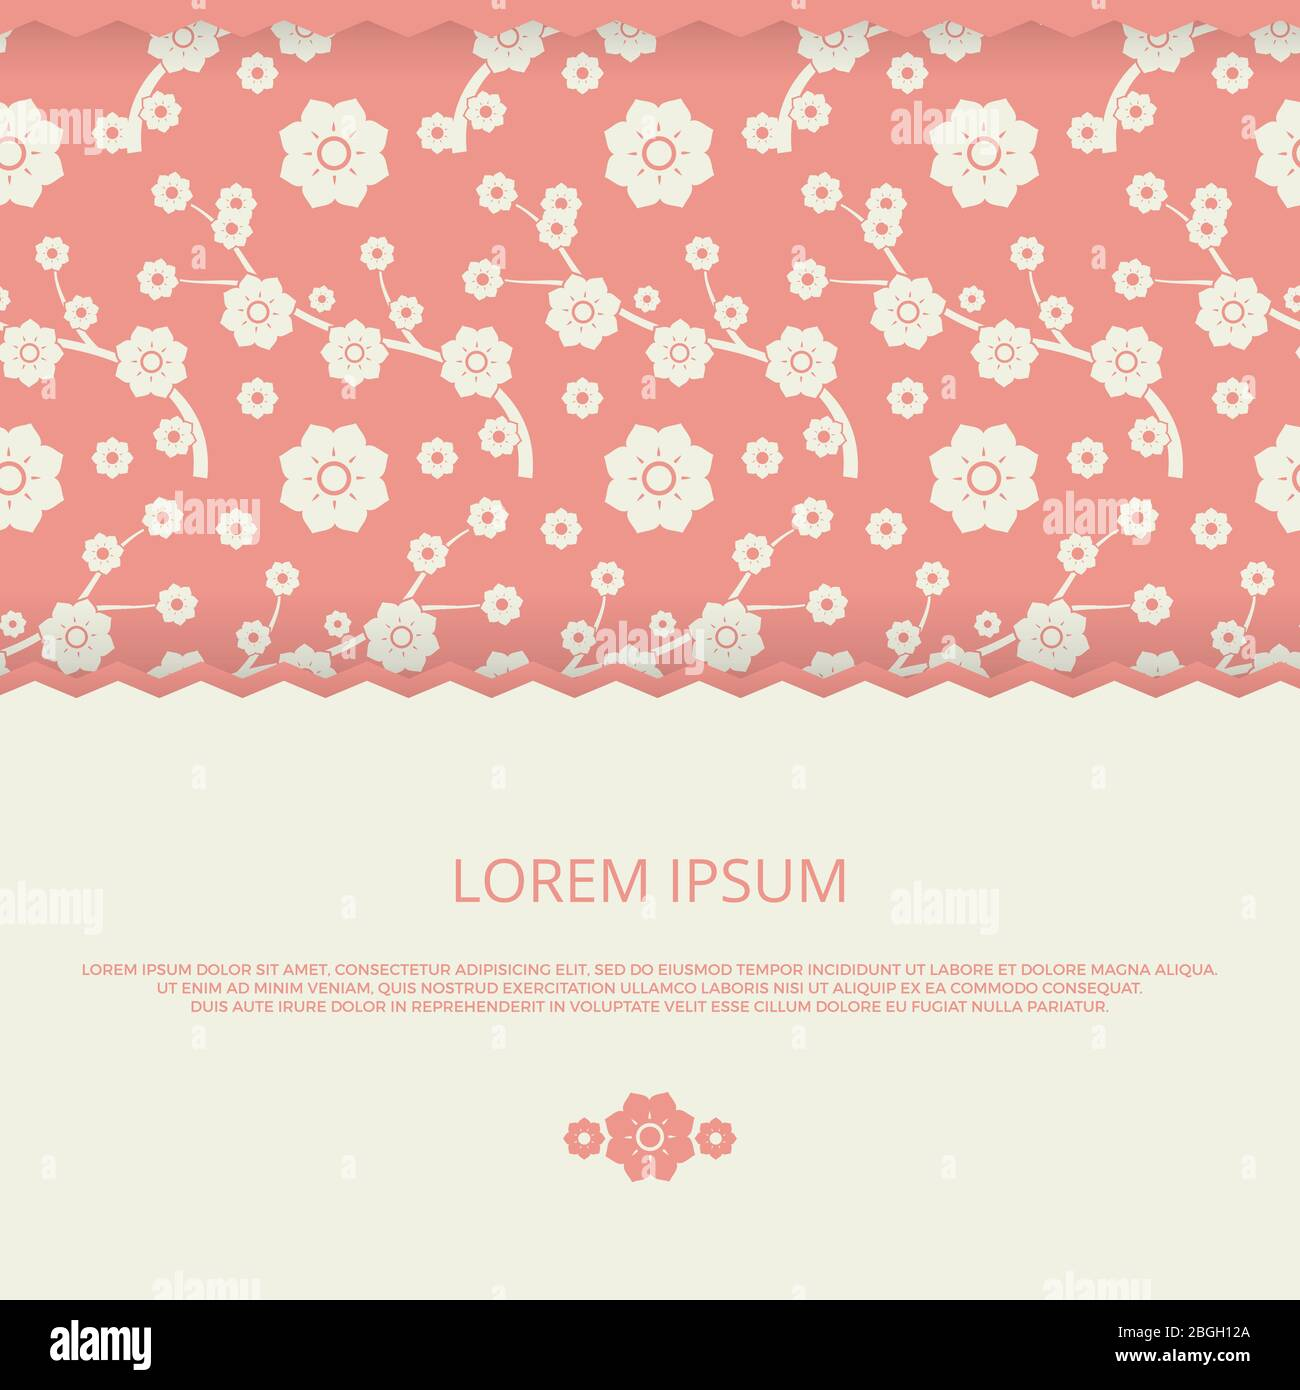 romantic banner design vector floral background with banner for wedding invitation cards and posters illustration stock vector image art alamy https www alamy com romantic banner design vector floral background with banner for wedding invitation cards and posters illustration image354415890 html